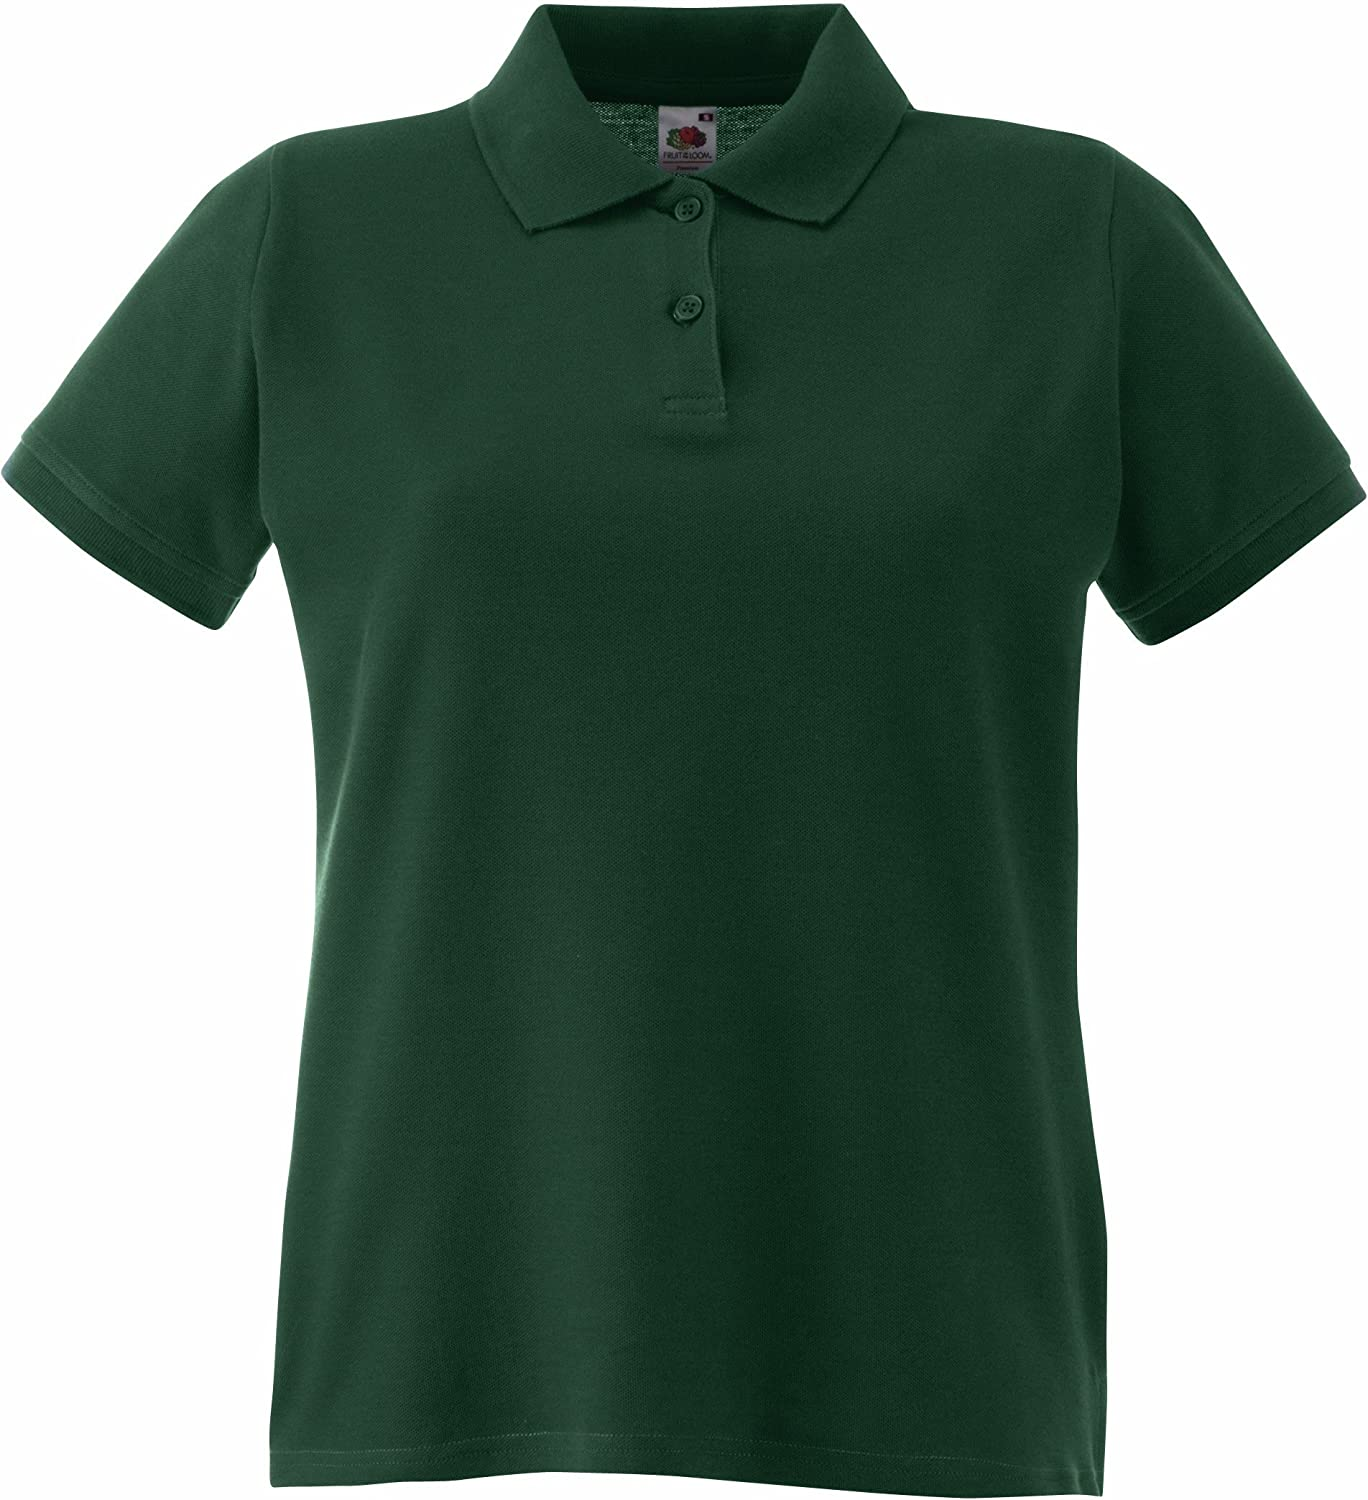 Lady-Fit Premium Poloshirt L / 14, Forest Green